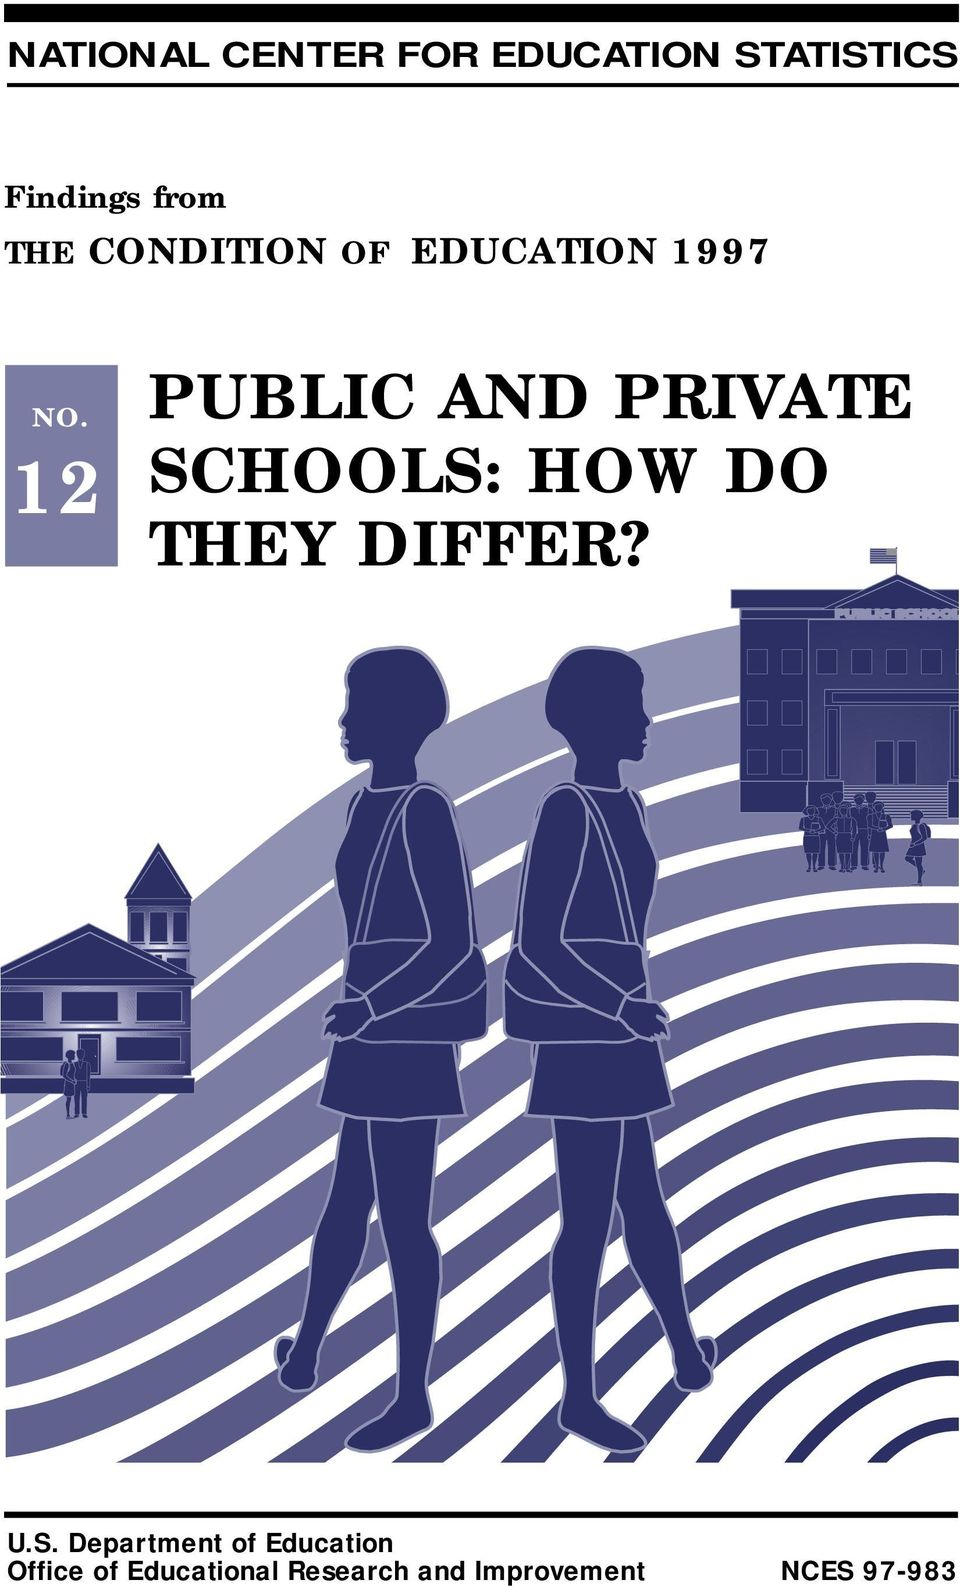 12 PUBLIC AND PRIVATE SCHOOLS: HOW DO THEY DIFFER?